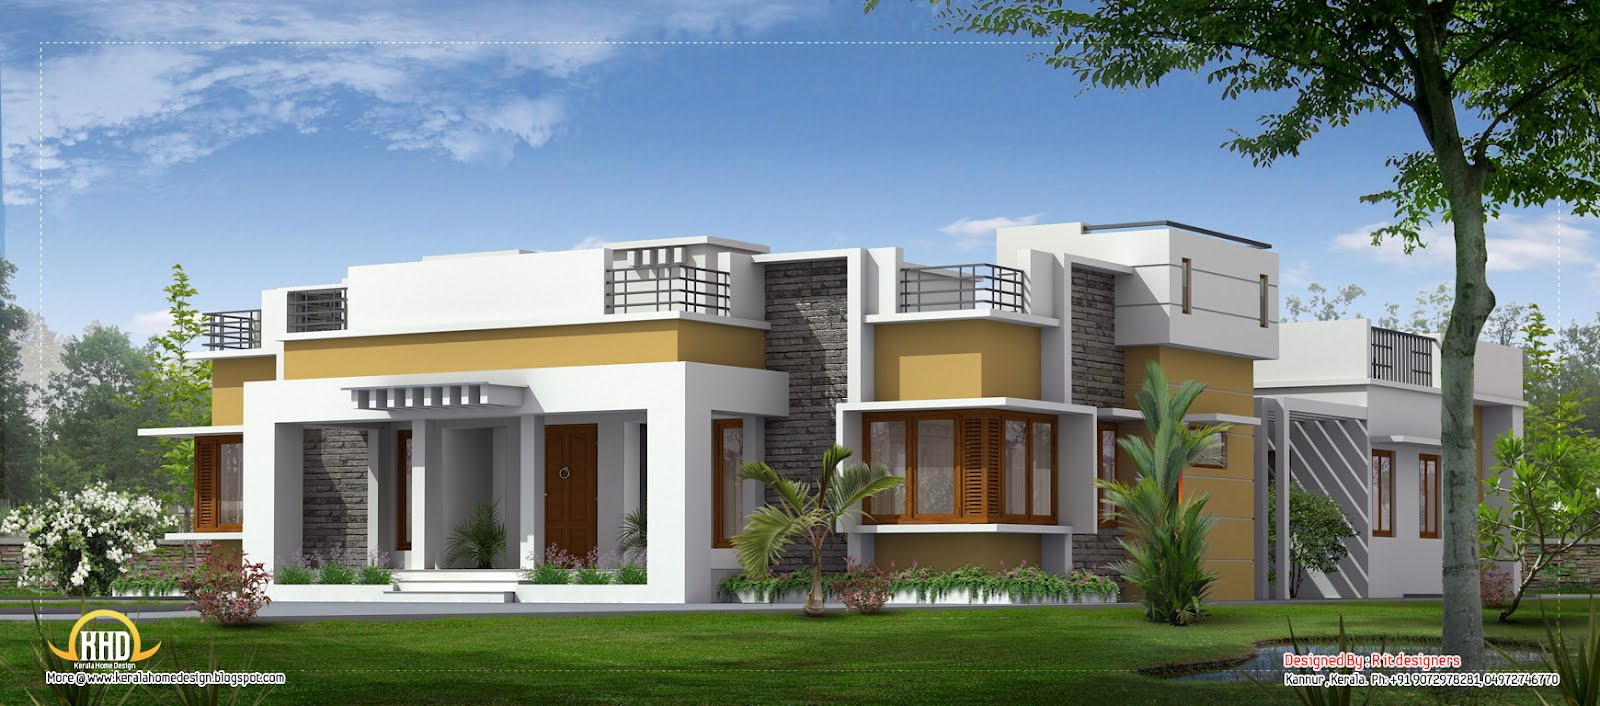 Fabulous Kerala Single Floor House Designs 1600 x 706 · 215 kB · jpeg